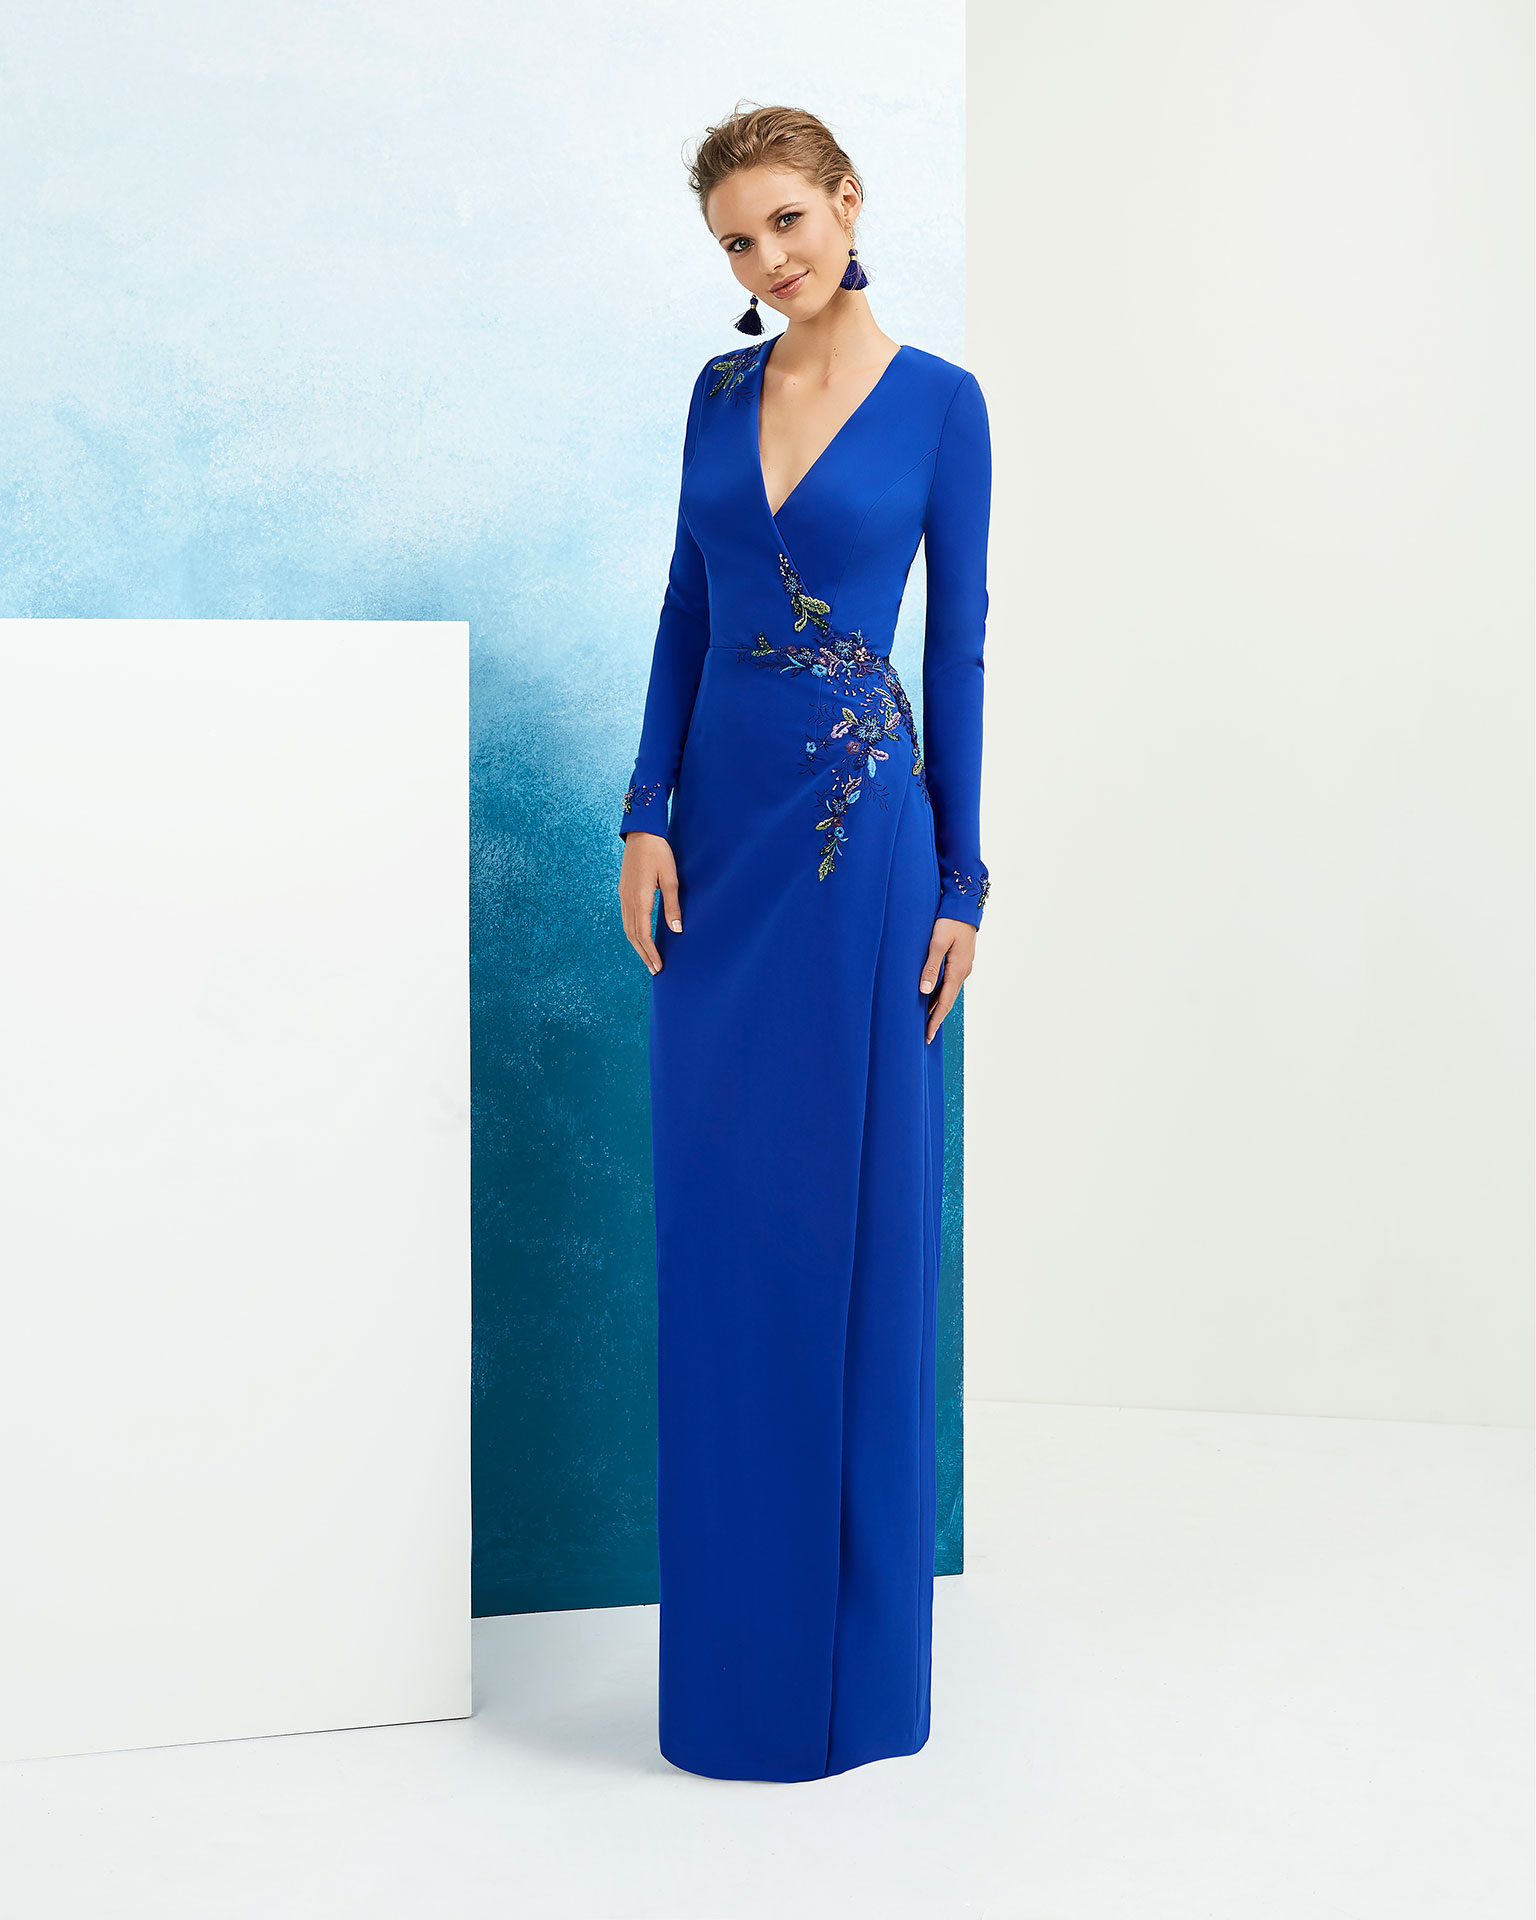 Beaded crepe cocktail dress. With V-neckline and long sleeves. Available in cobalt, red, fuchsia and beige. 2019 FIESTA AIRE BARCELONA Collection.